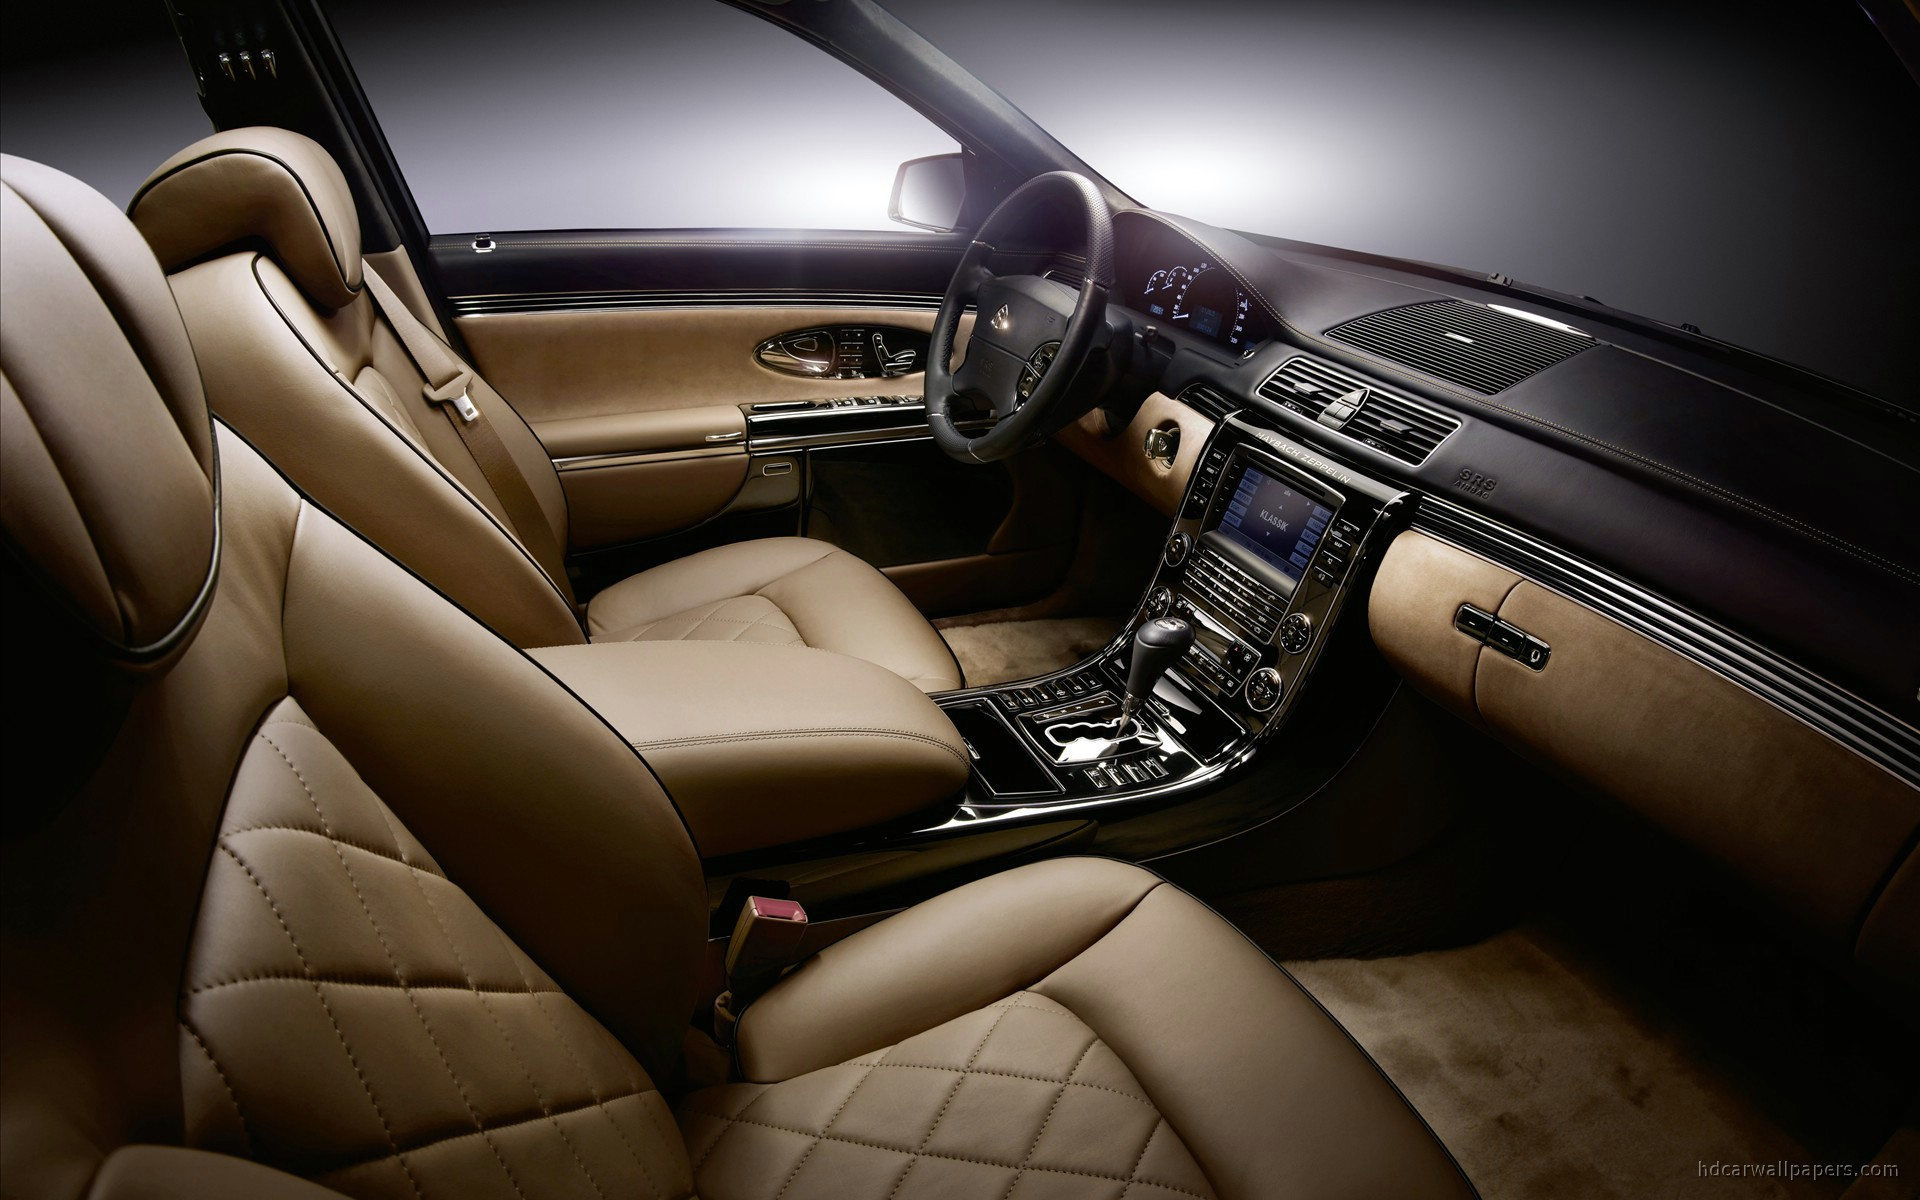 maybach zeppelin interior wallpaper hd car wallpapers id 1087. Black Bedroom Furniture Sets. Home Design Ideas